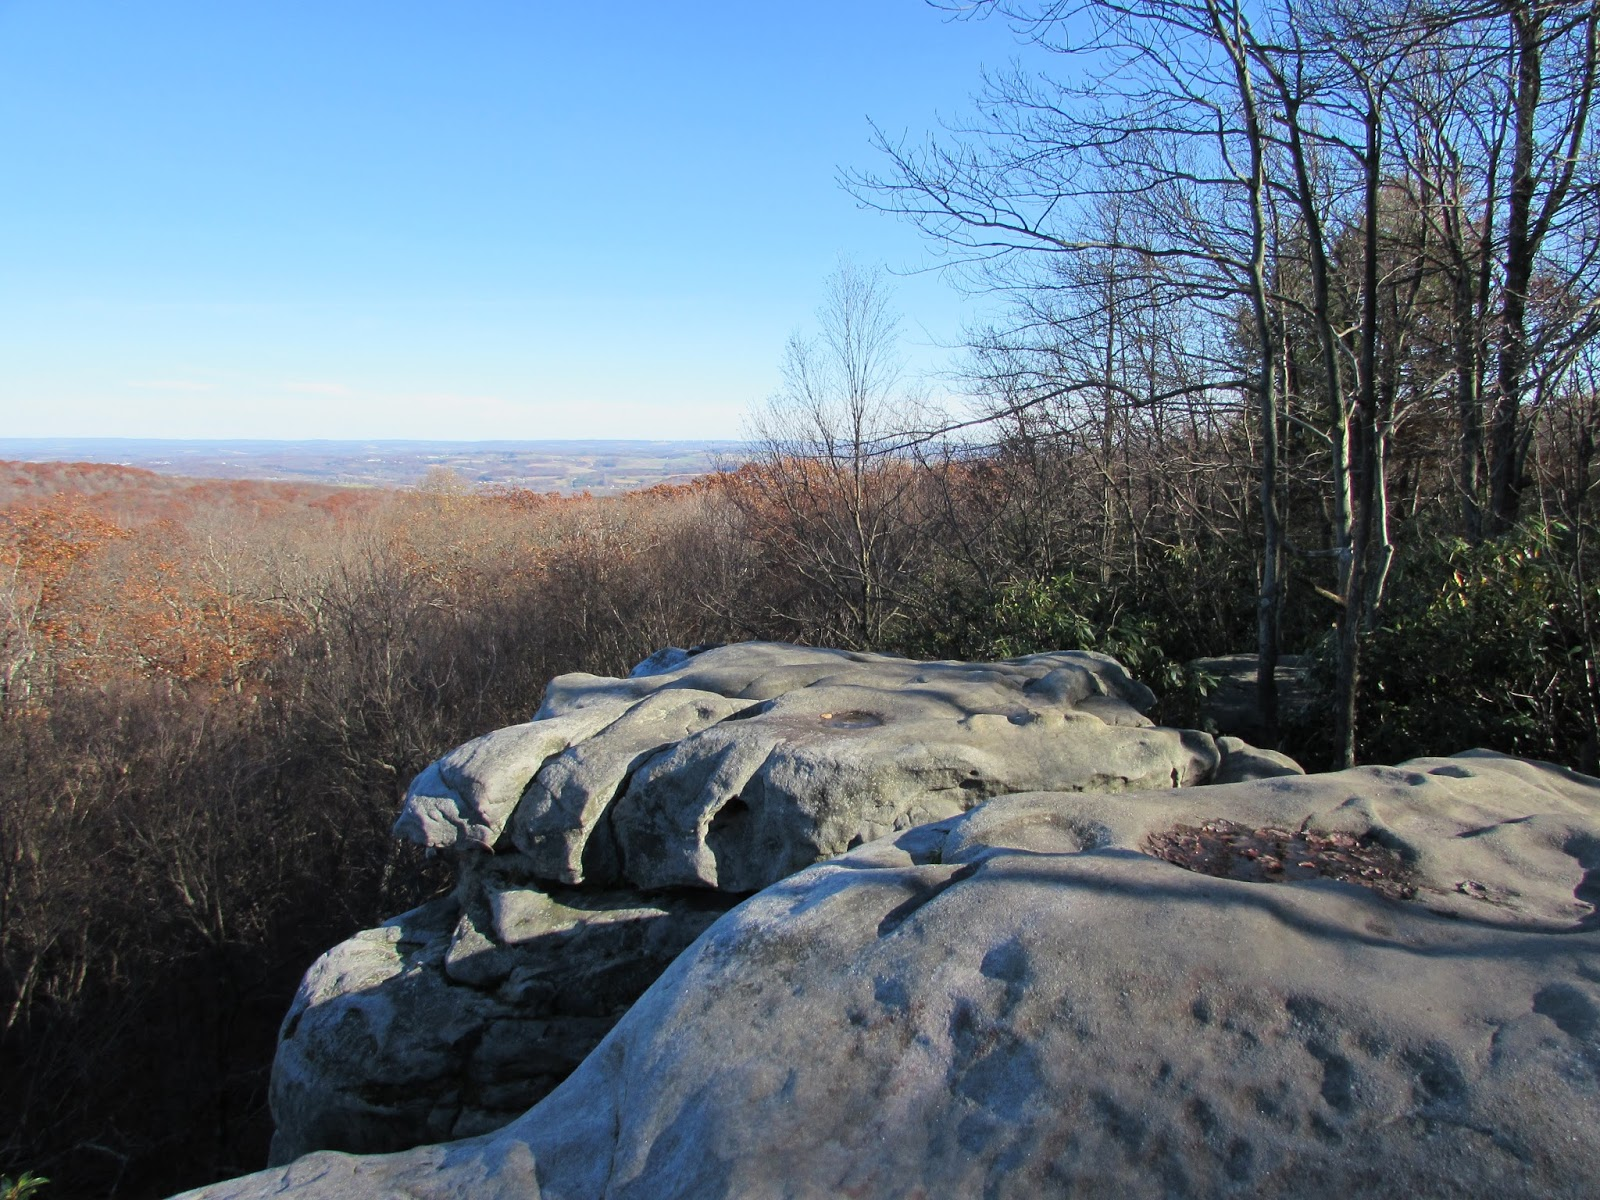 Beam Rocks Overlook Hike And Linn Run State Park, Laughlintown, PA,  Somerset And Westmoreland Counties